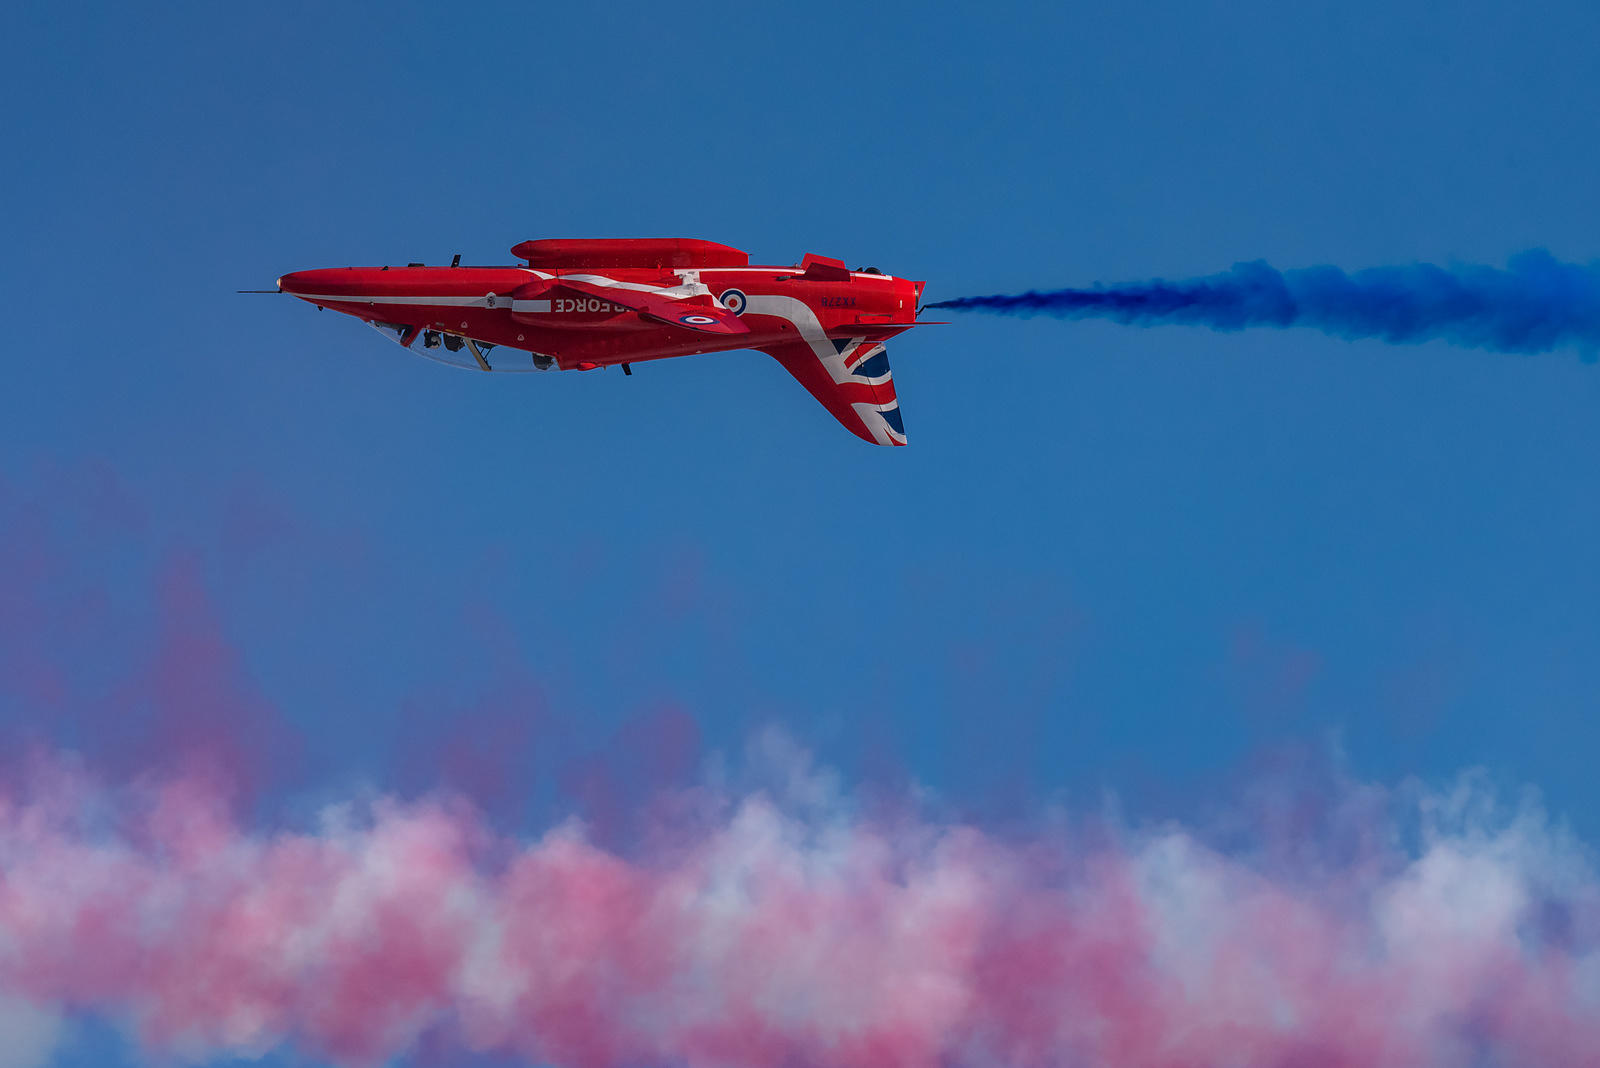 Red Arrows Hawk inverted